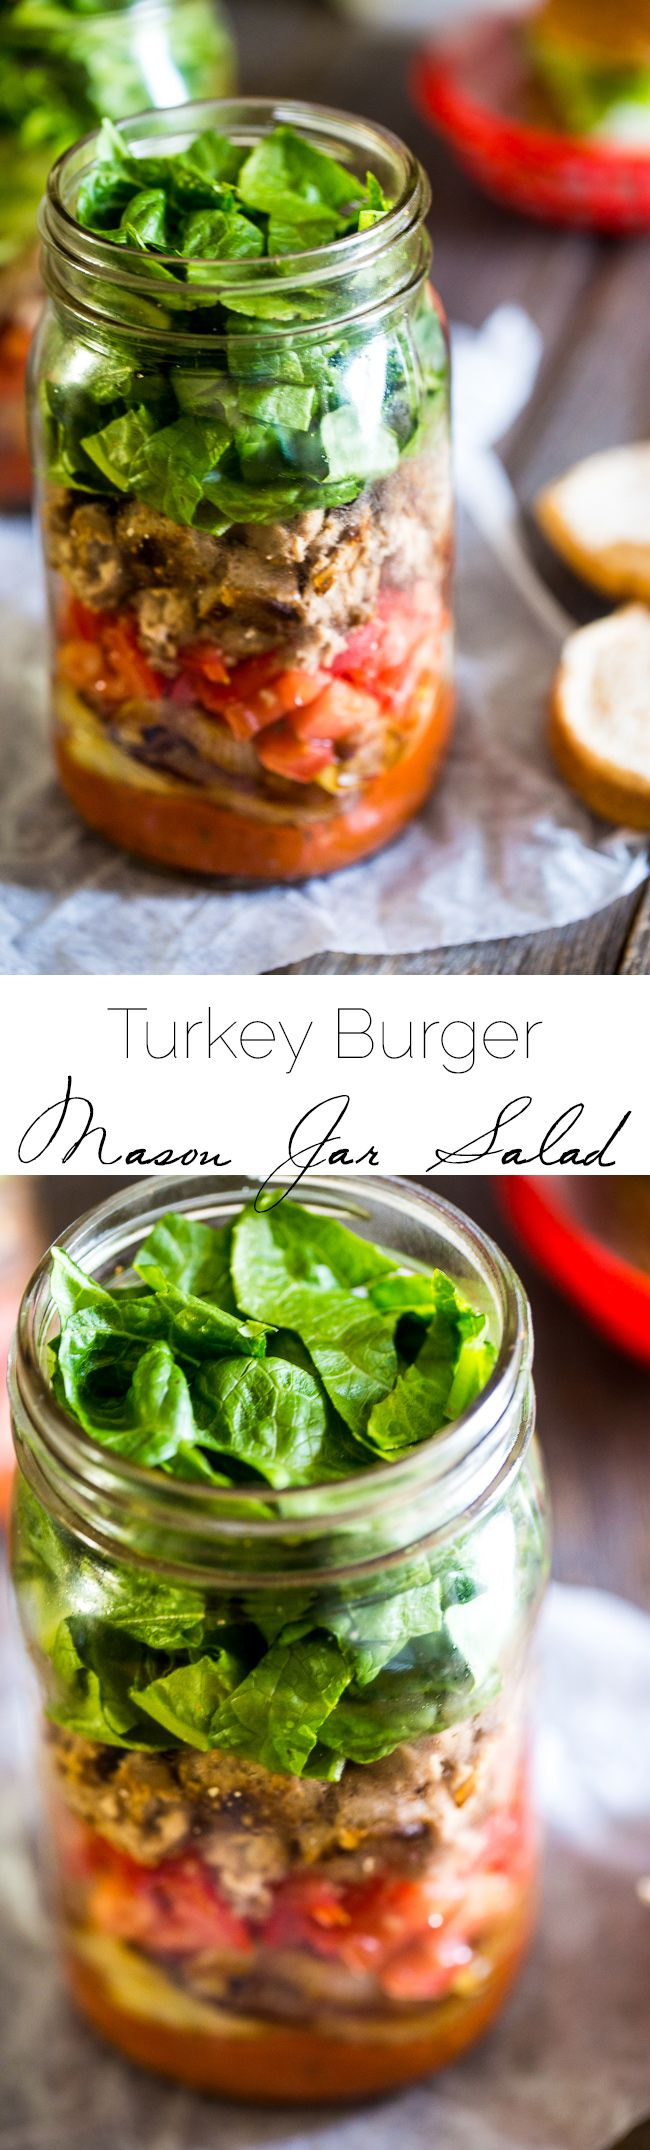 Turkey Burger Mason Jar Salads - A fun, easy way to make your burger portable! All the taste of a burger in a healthy, gluten free and low carb meal! | Foodfaithfitness.com | @FoodFaithFit